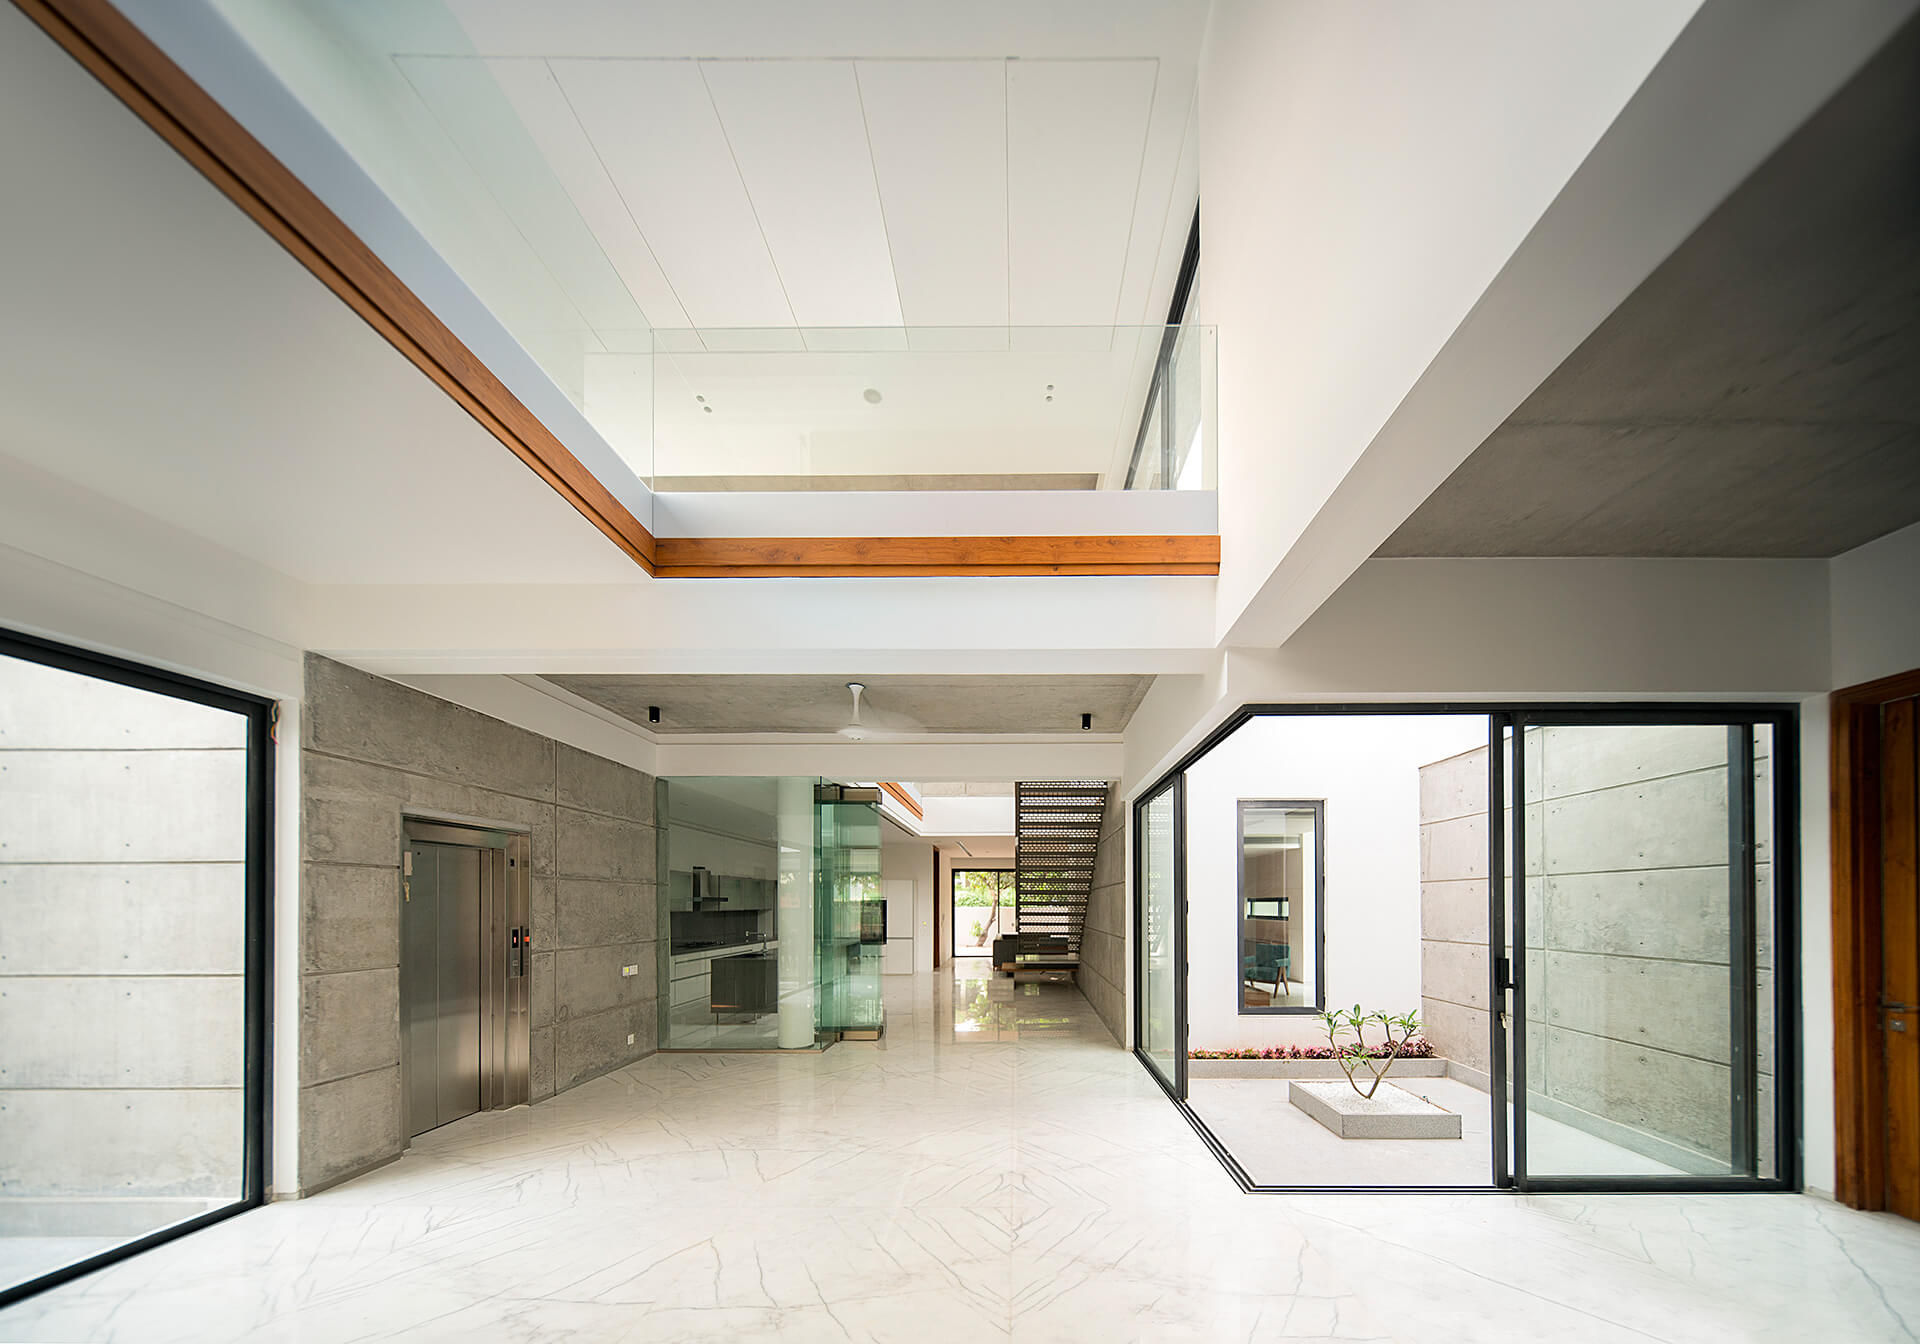 Courtyards overlap with the living spaces | Charged Voids | Chandigarh, India | STIRworld